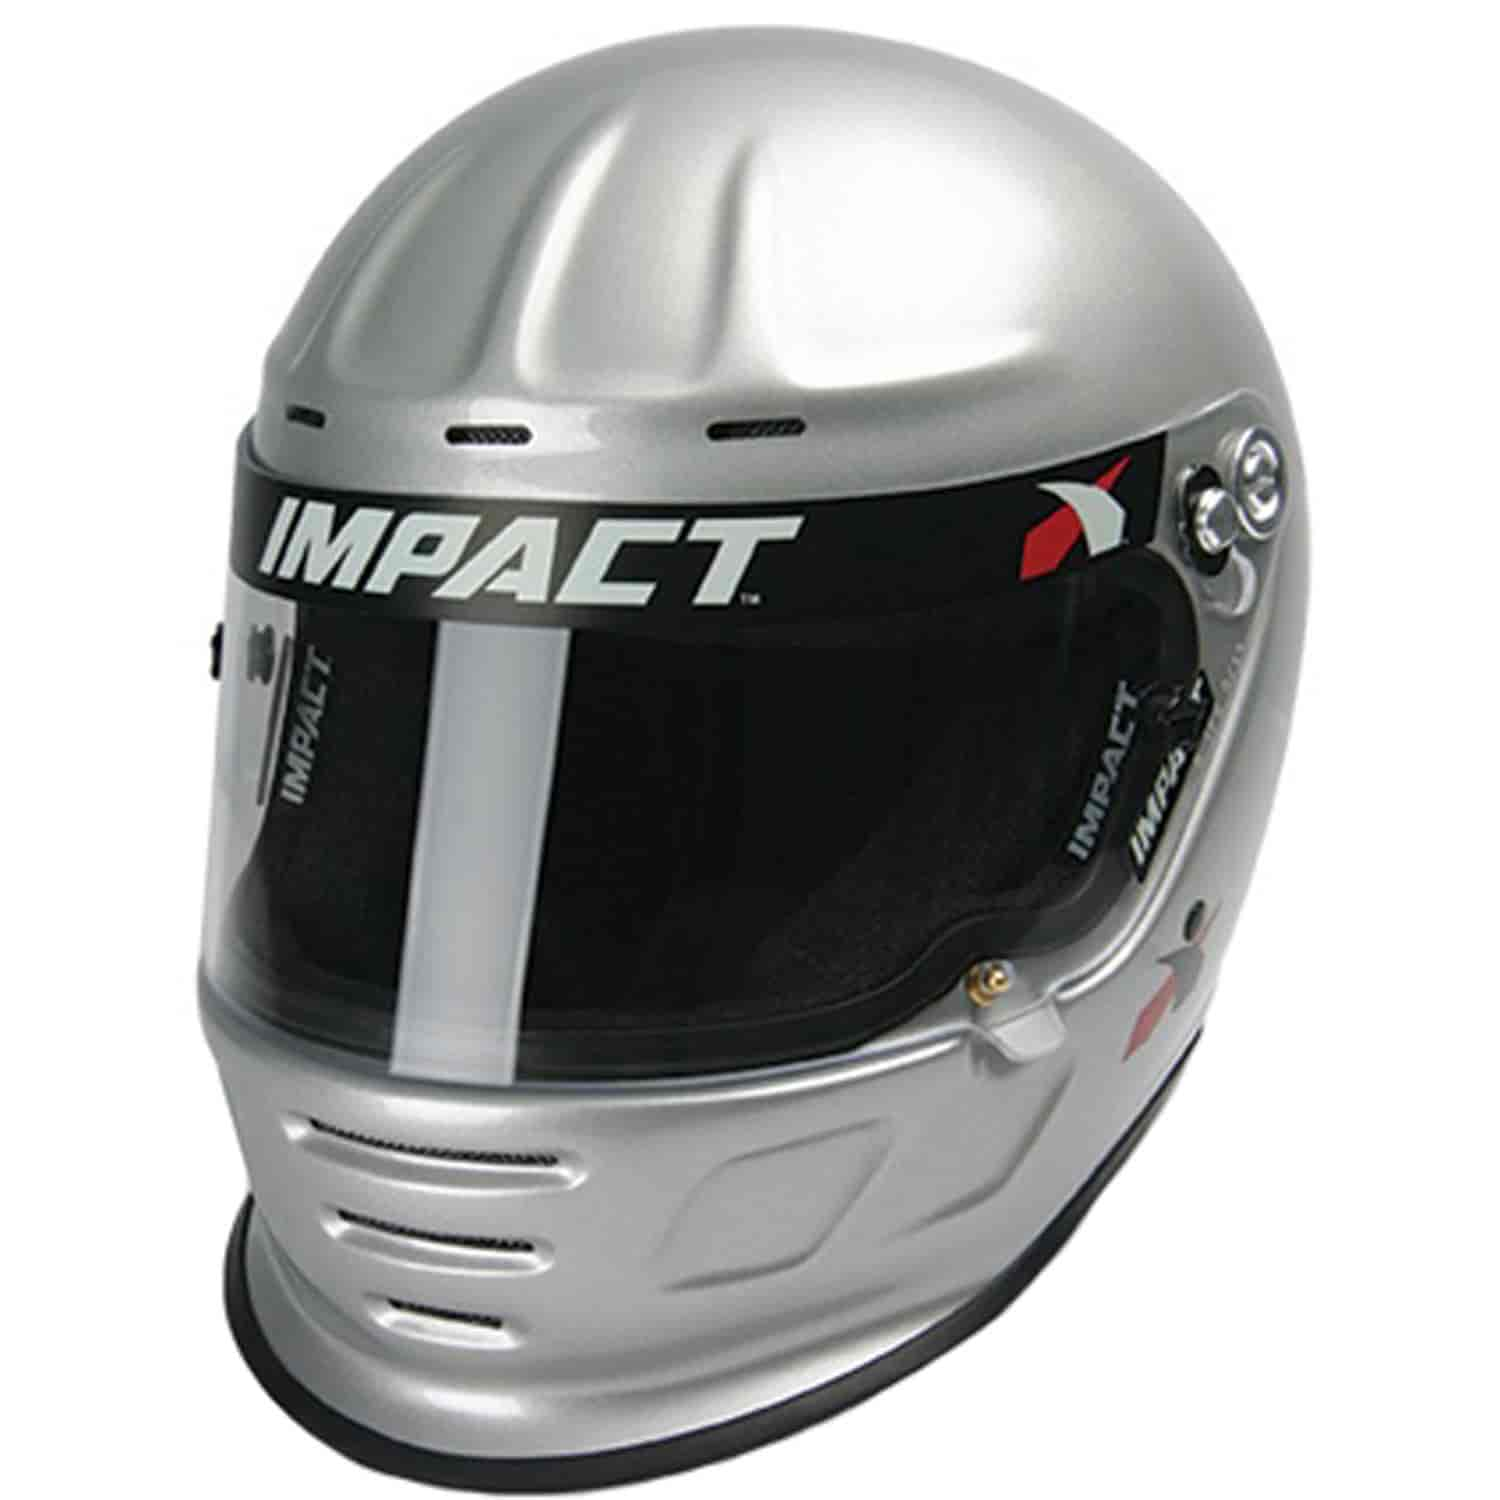 Single impact helmet : Antenne bayern single männer hausen